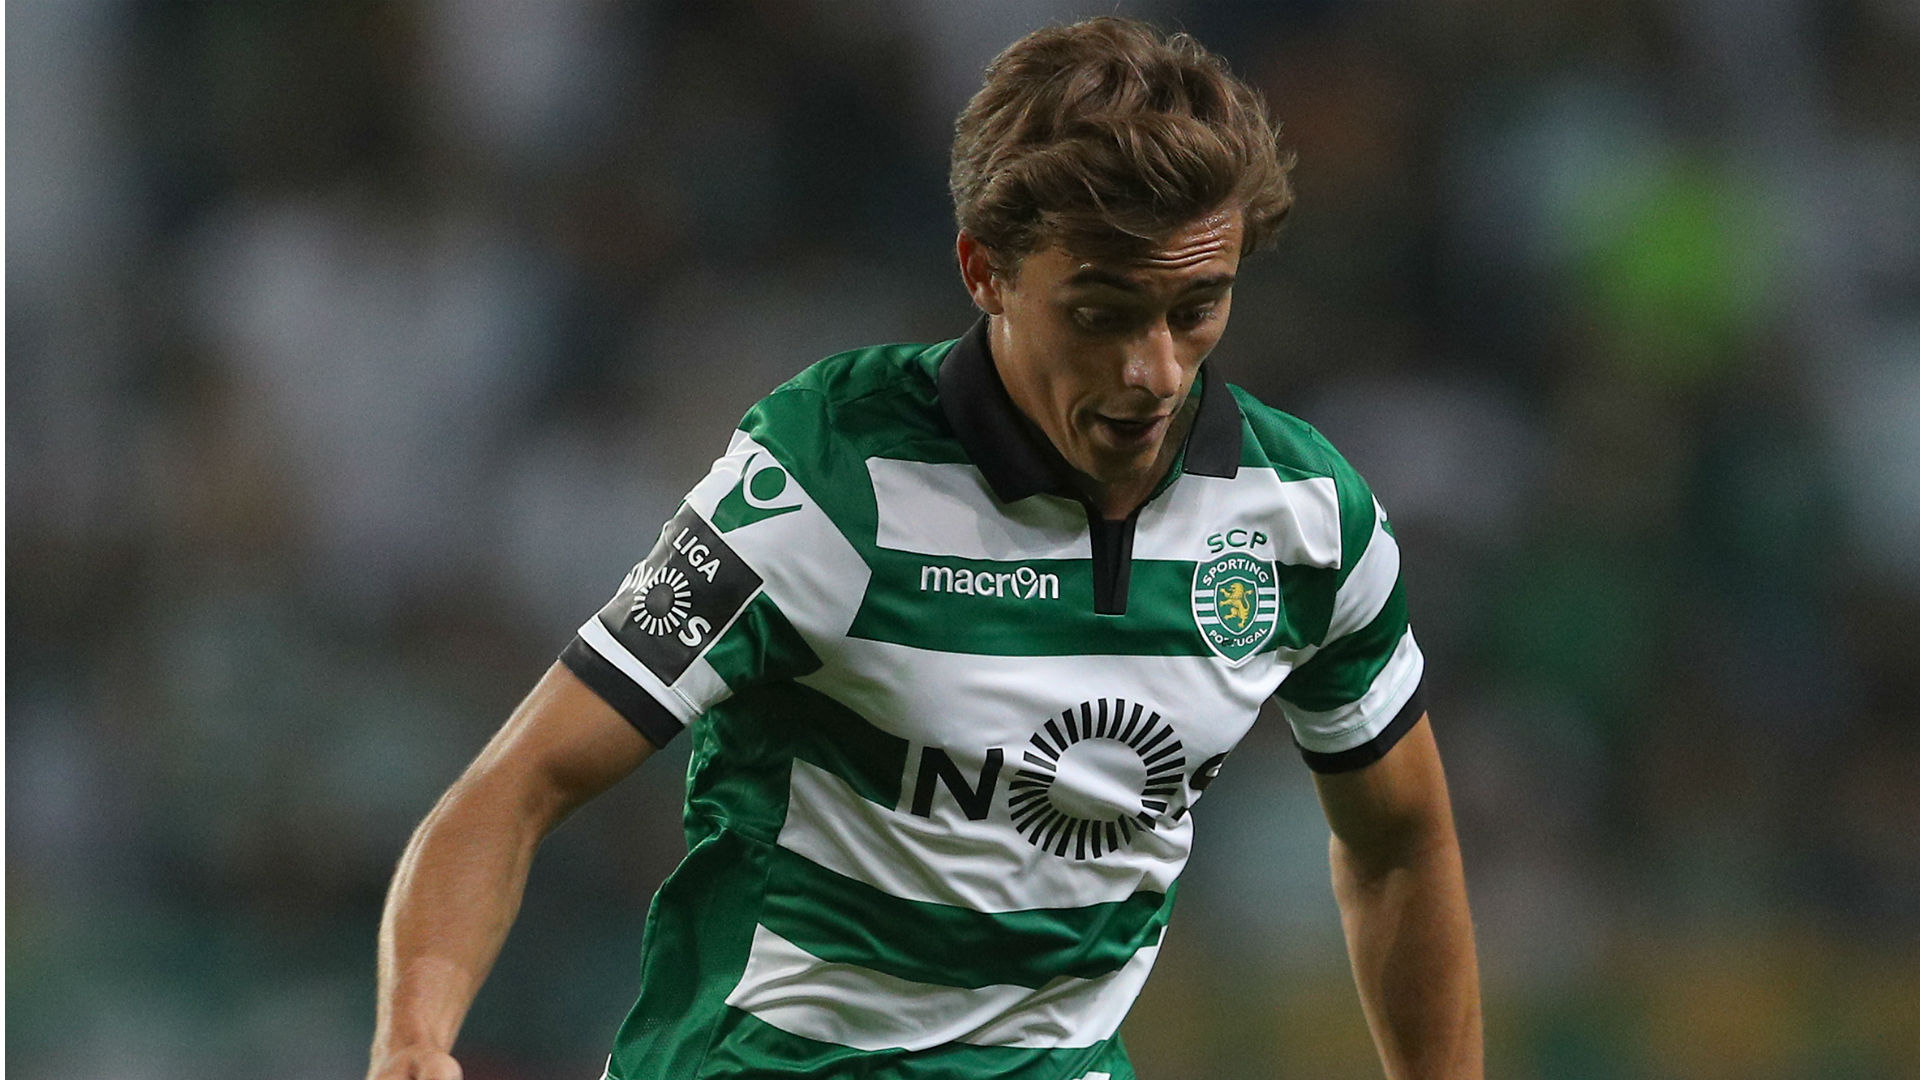 Francisco Geraldes Sporting CP